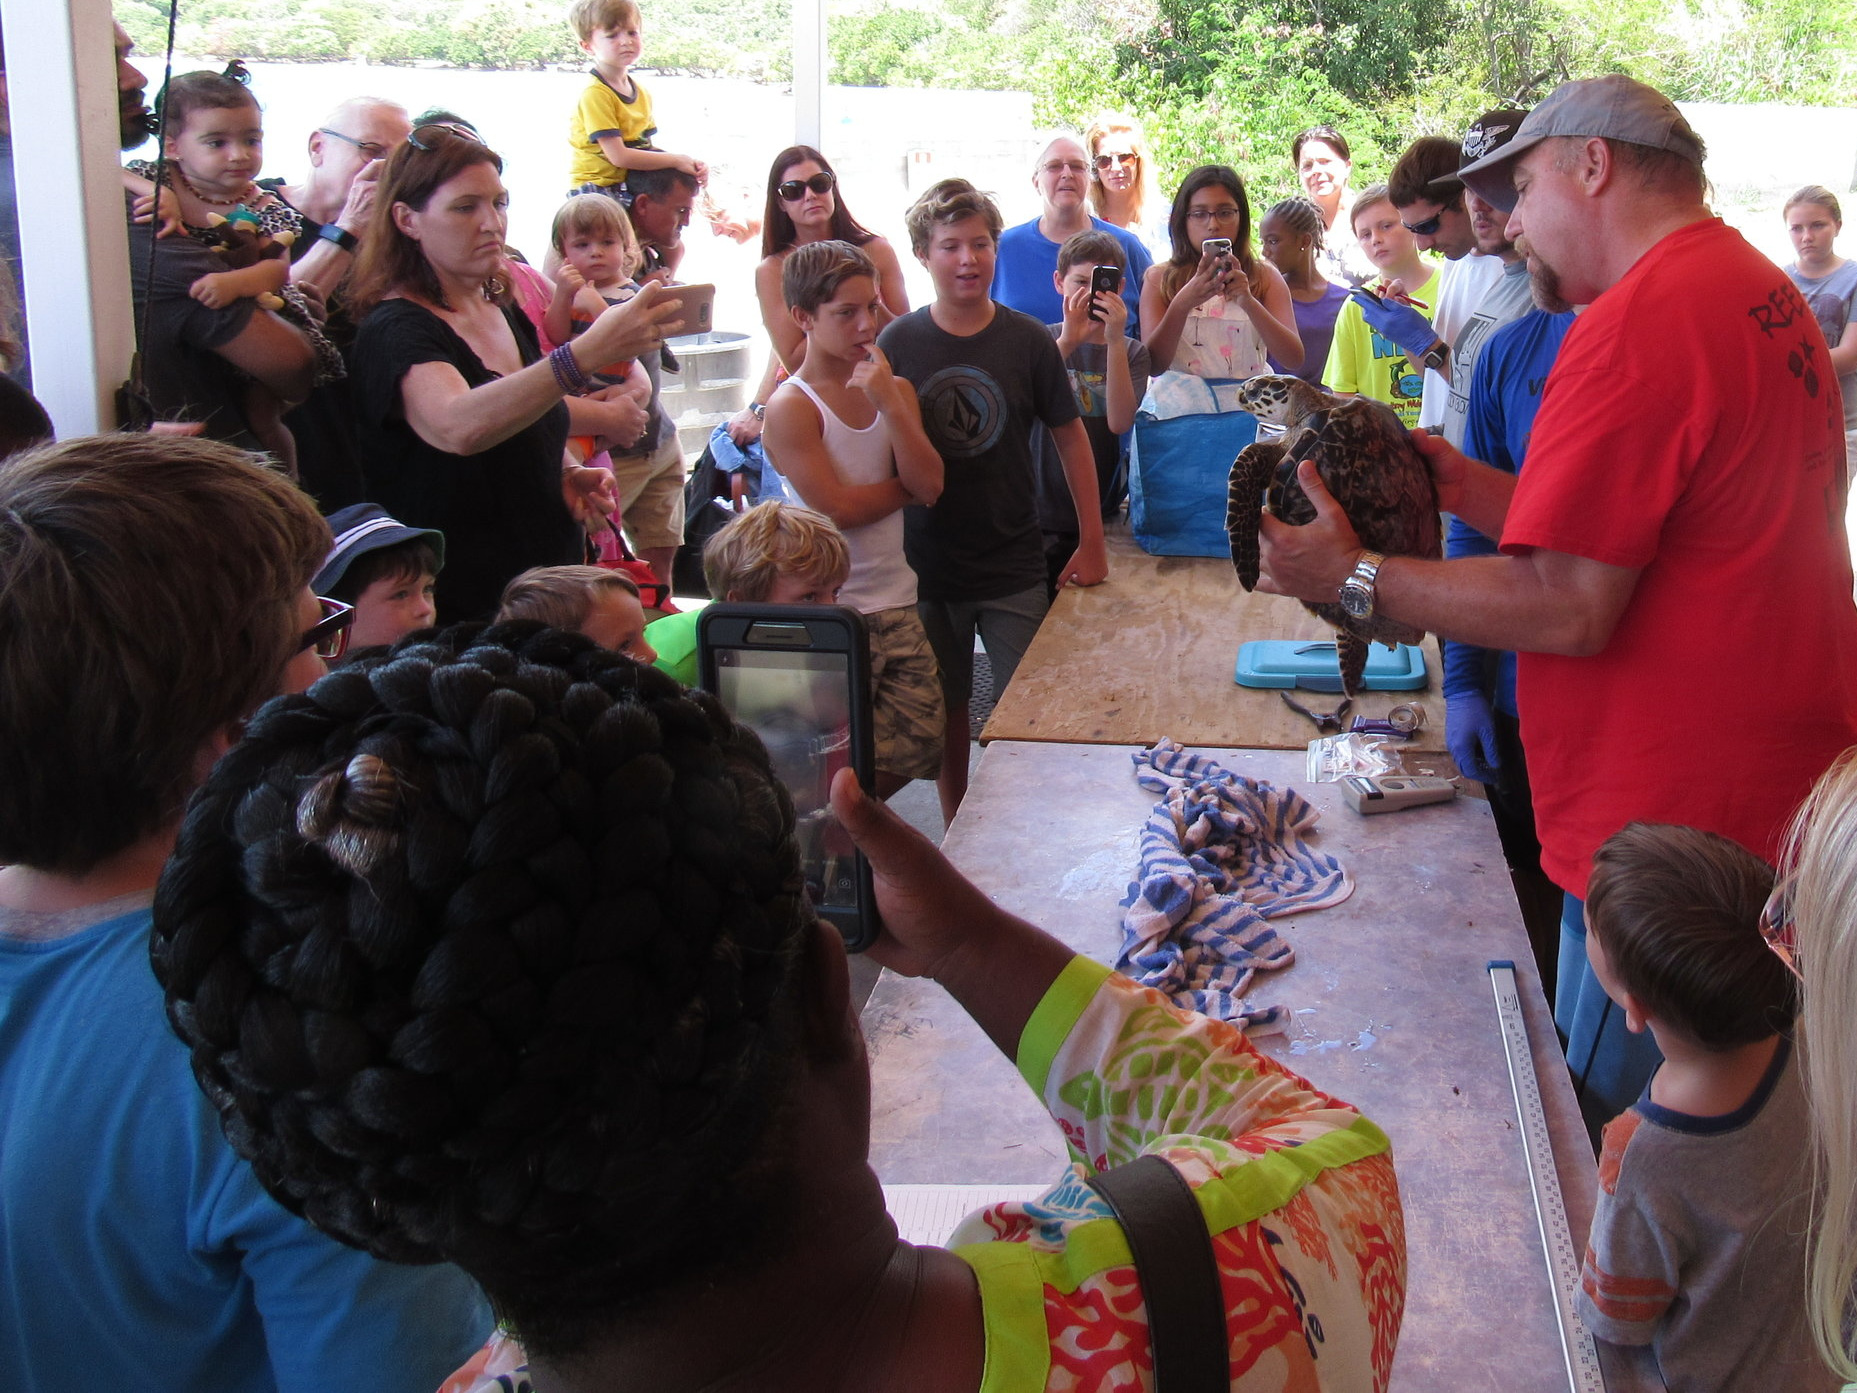 Dr. Paul Jobsis, seen above in red, shows a juvenile hawksbill sea turtle to participants of a recent Turtle Tagging event. For many, this is a s closed as they will get to a sea turtle as regulations are extremely restrictive. All work with turtles by UVI researchers are conducted pursuant to a NFMS permit.